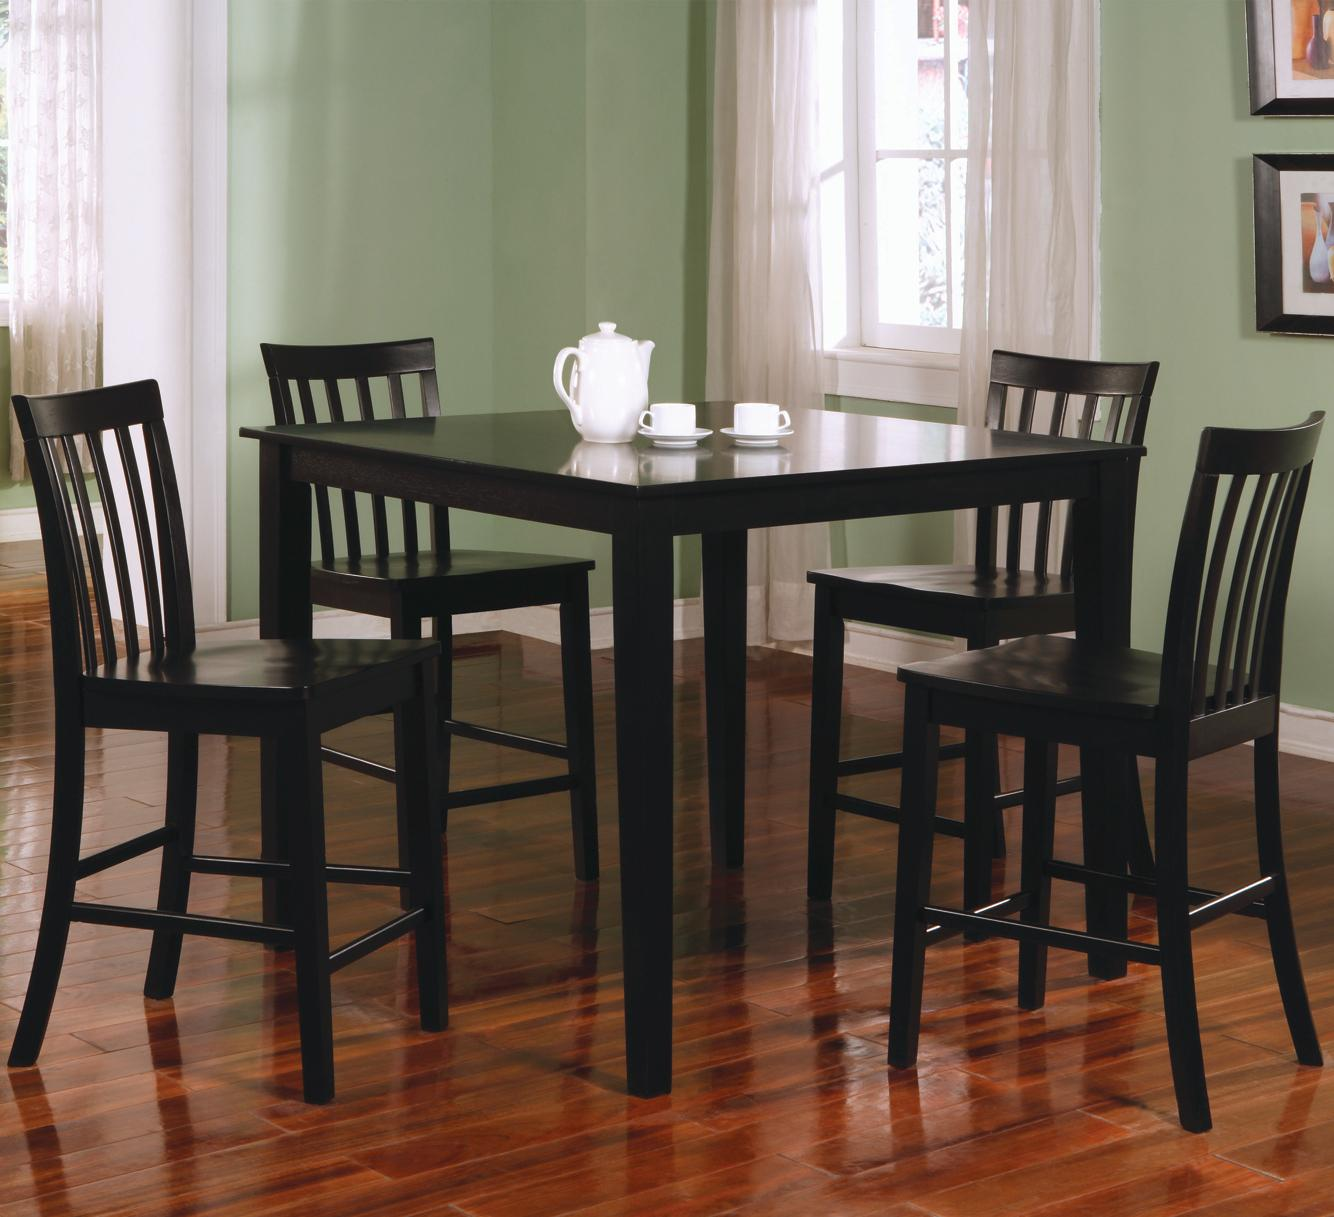 Coaster Ashland 5 Piece Counter Height Dining Set - Item Number: 150231BLK